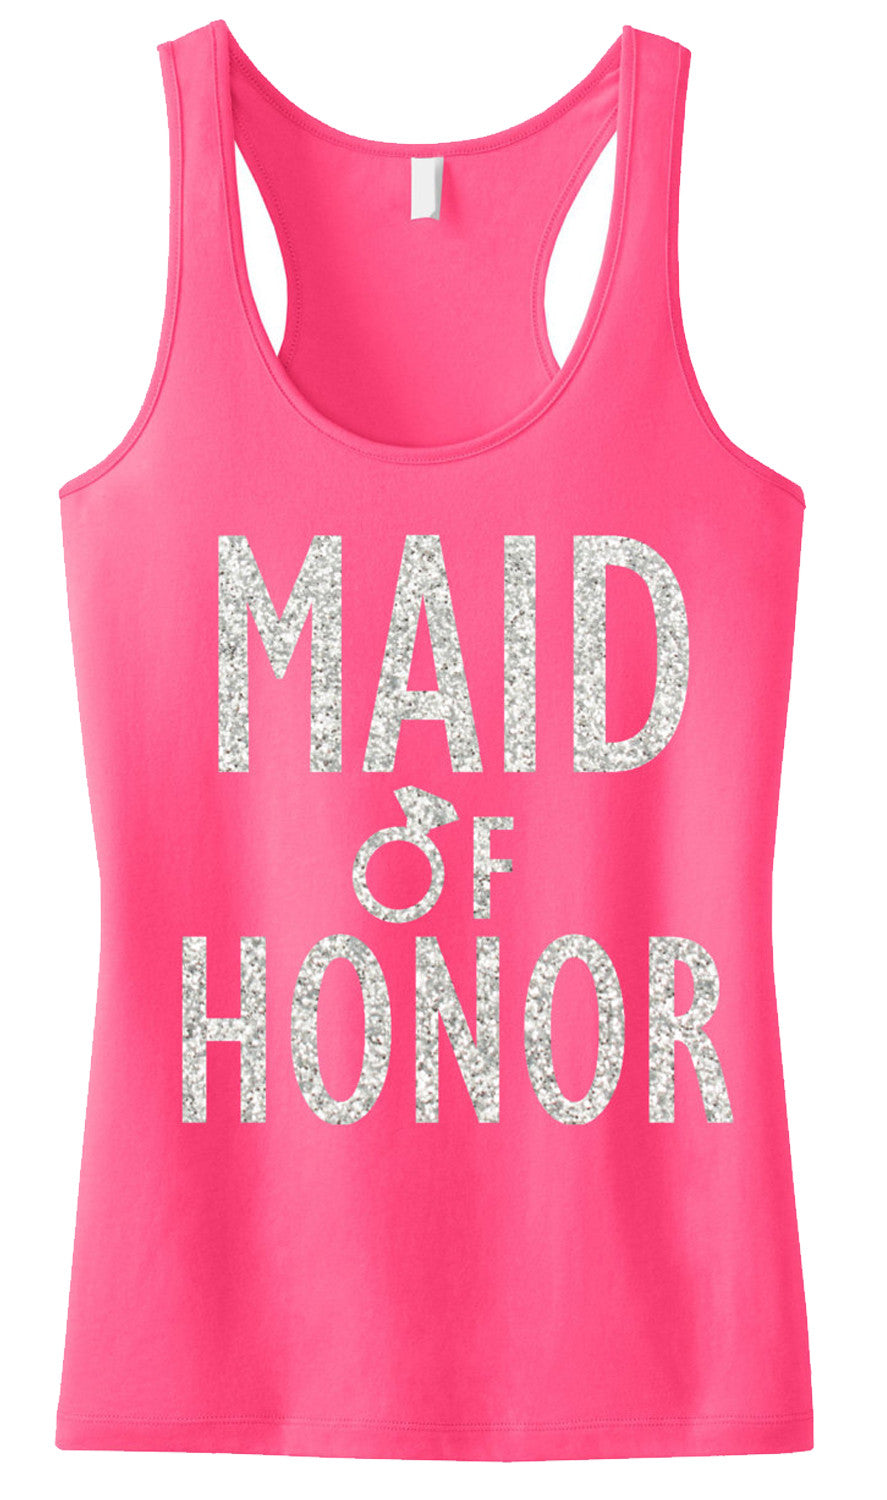 MAID of HONOR GLITTER Tank Top Pink